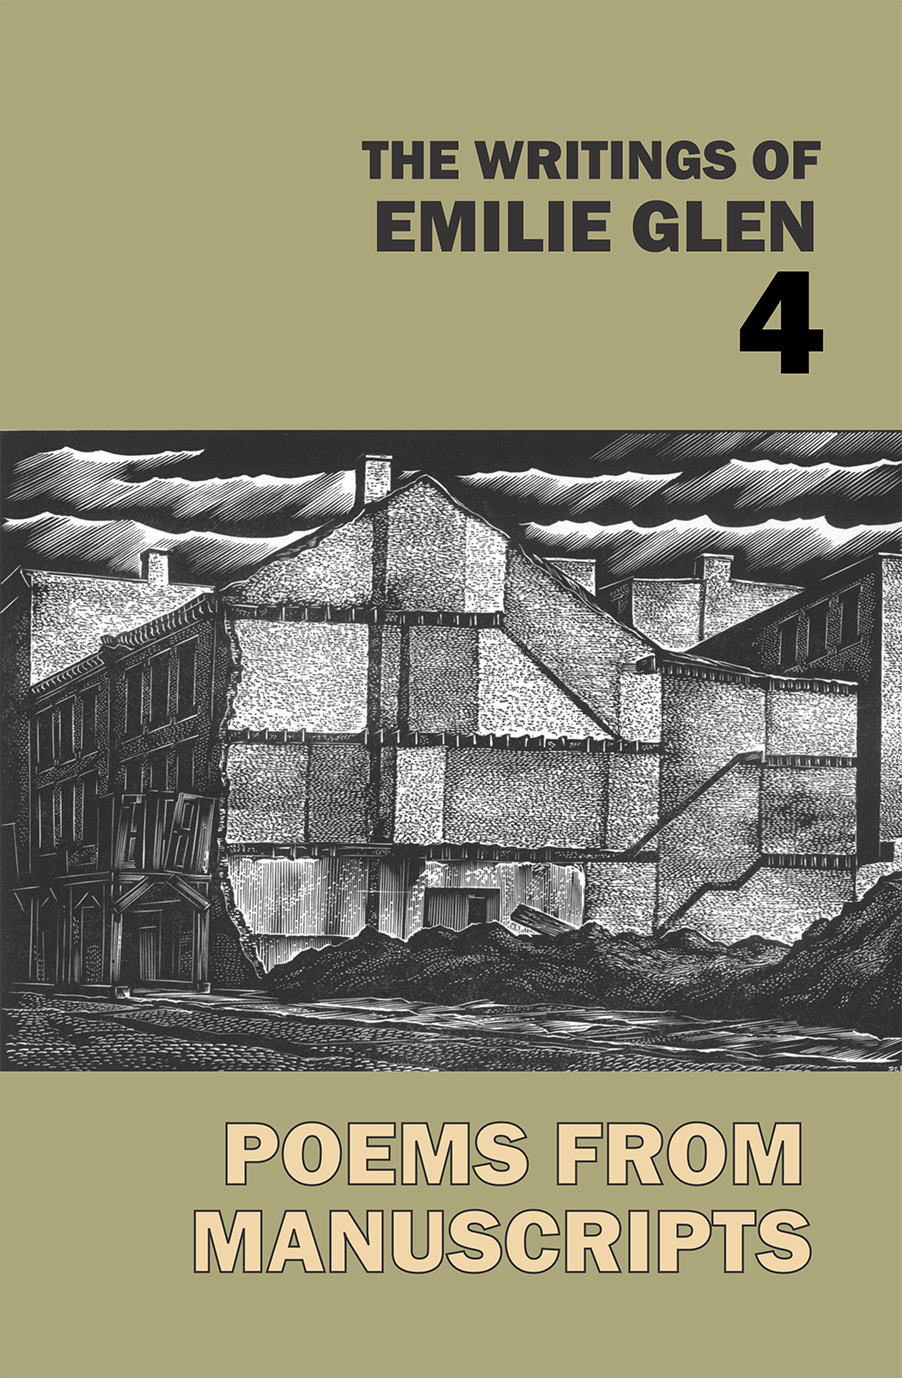 The Writings Of Emilie Glen 4: Poems From Manuscripts